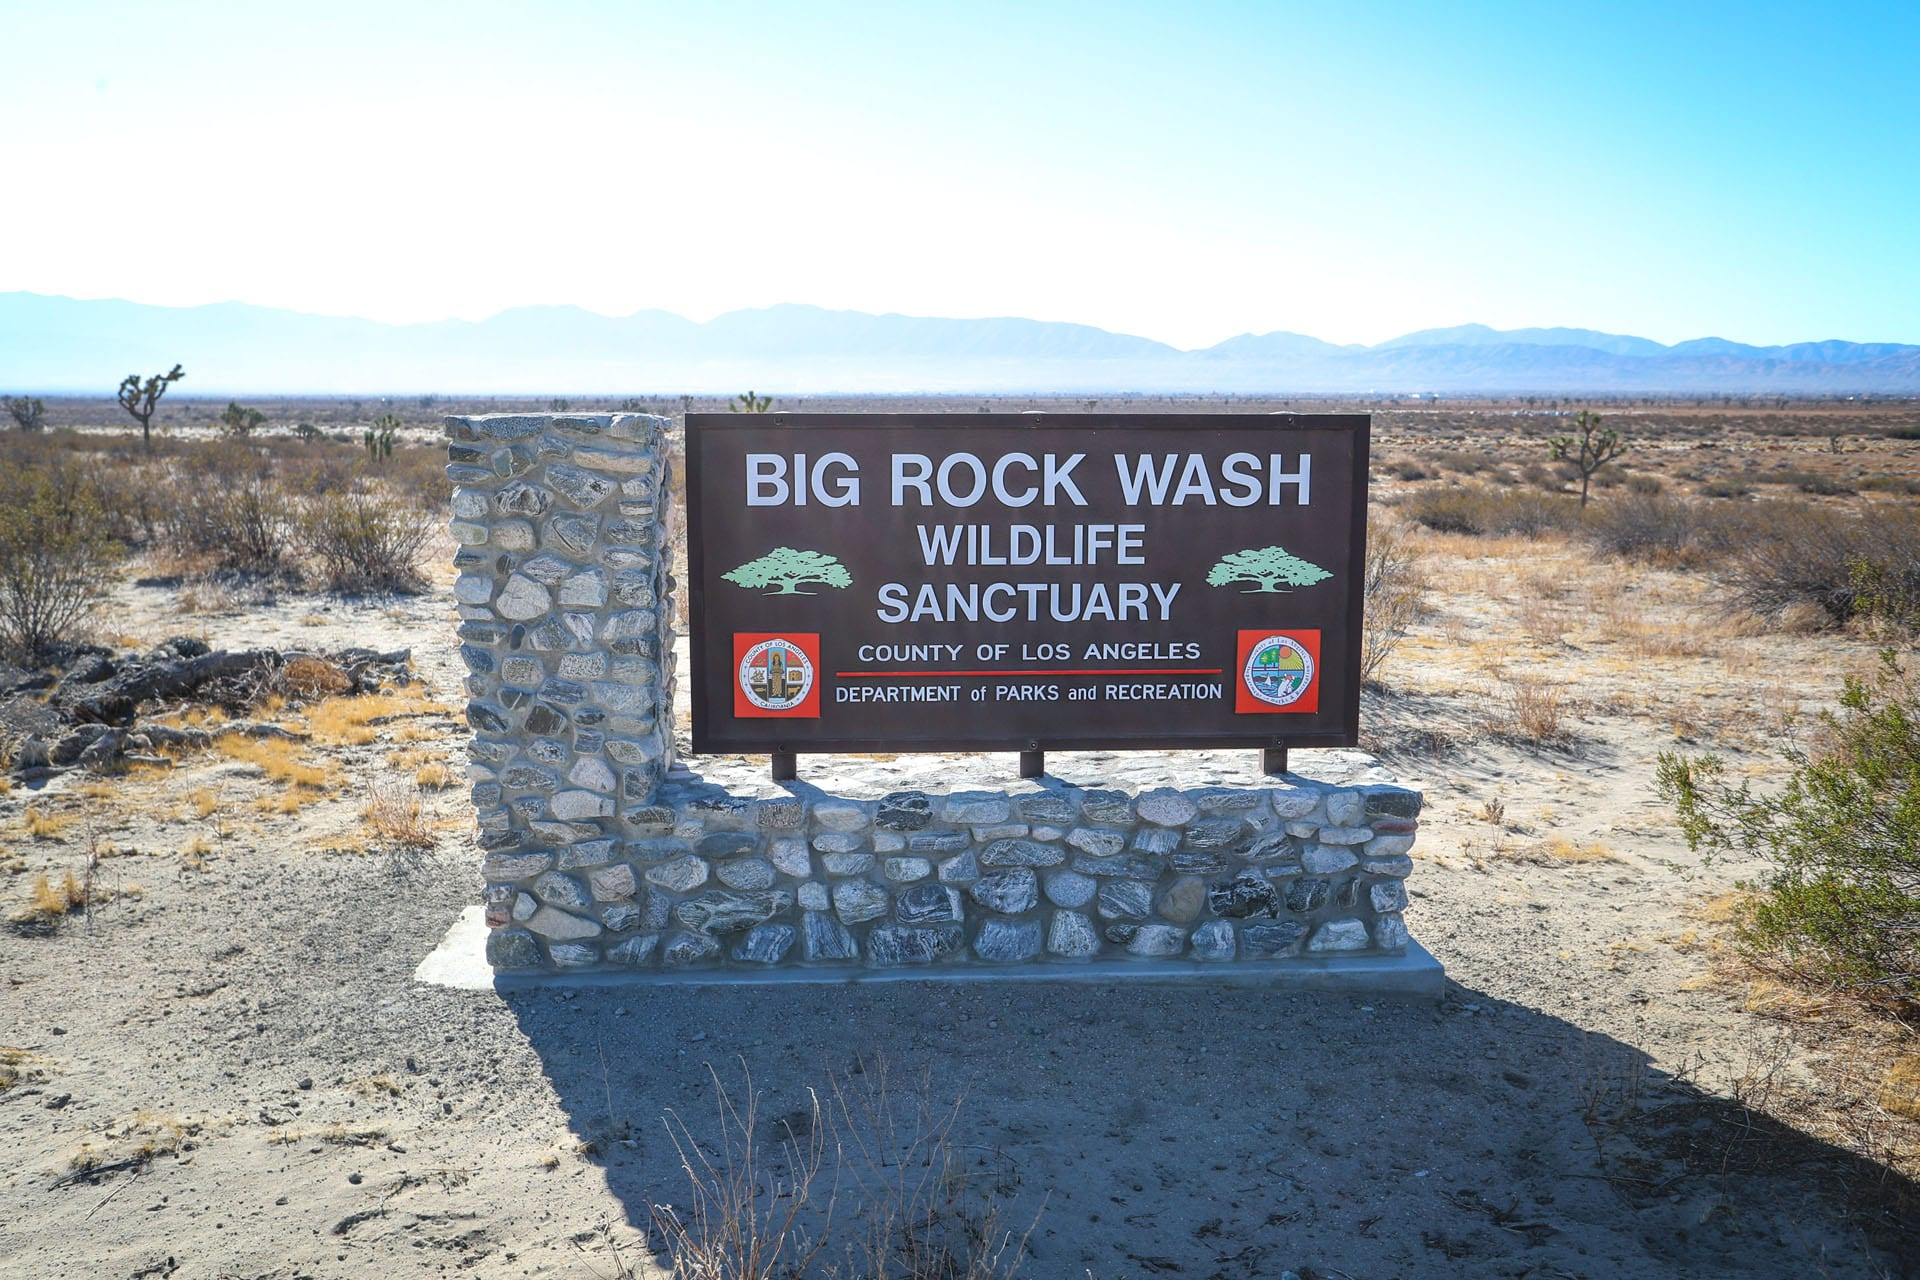 Big Rock Wash Wildlife Sanctuary sign